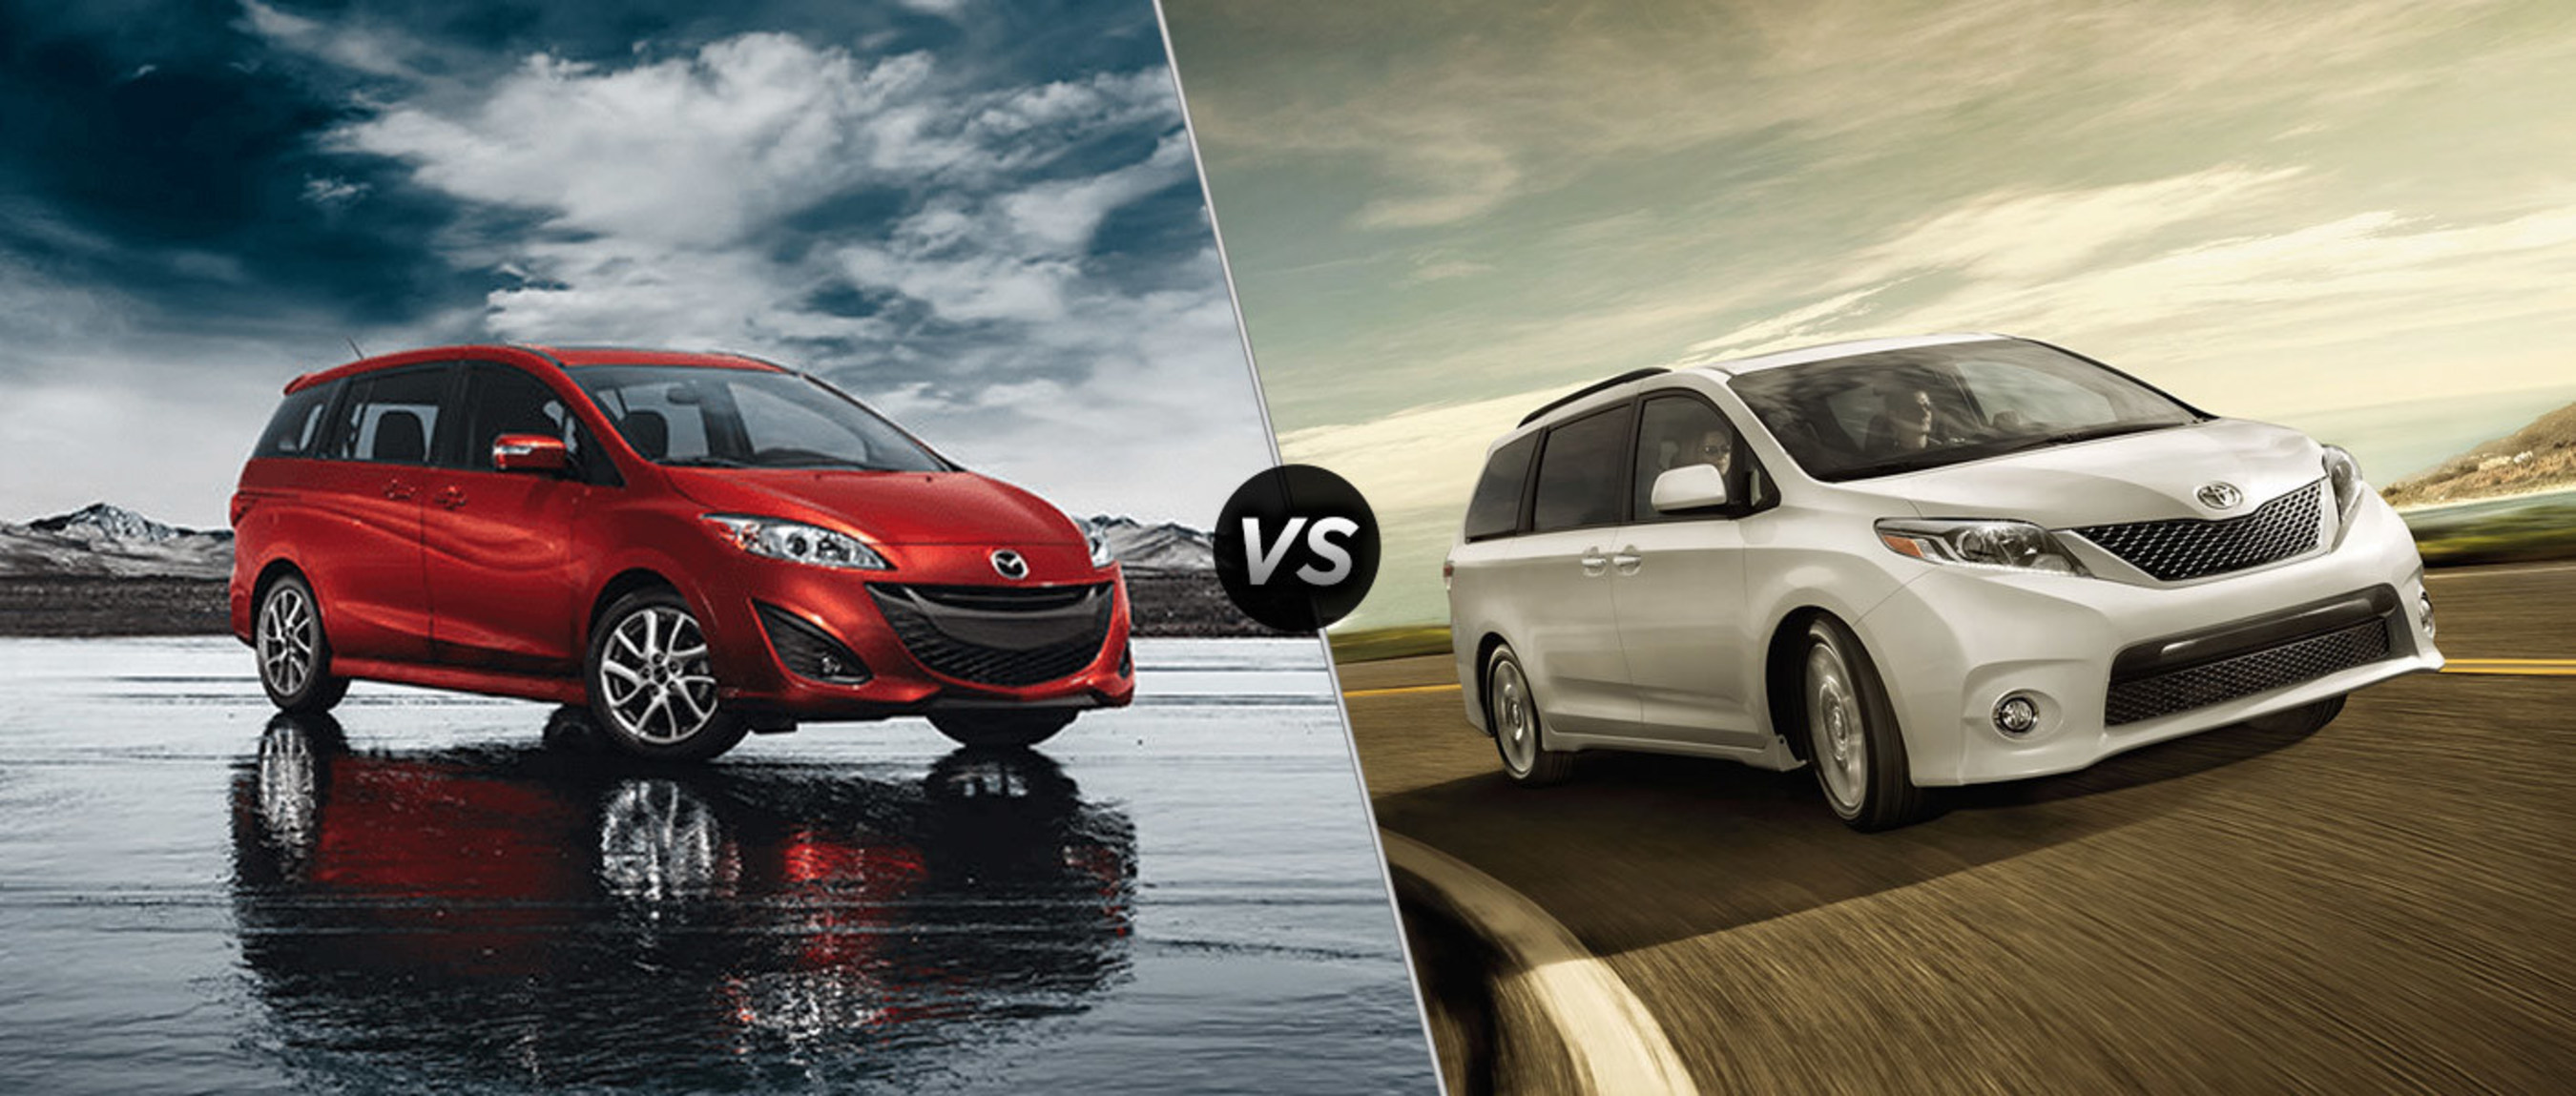 Comparison finds 2015 Mazda 5 superior to 2015 Toyota Sienna